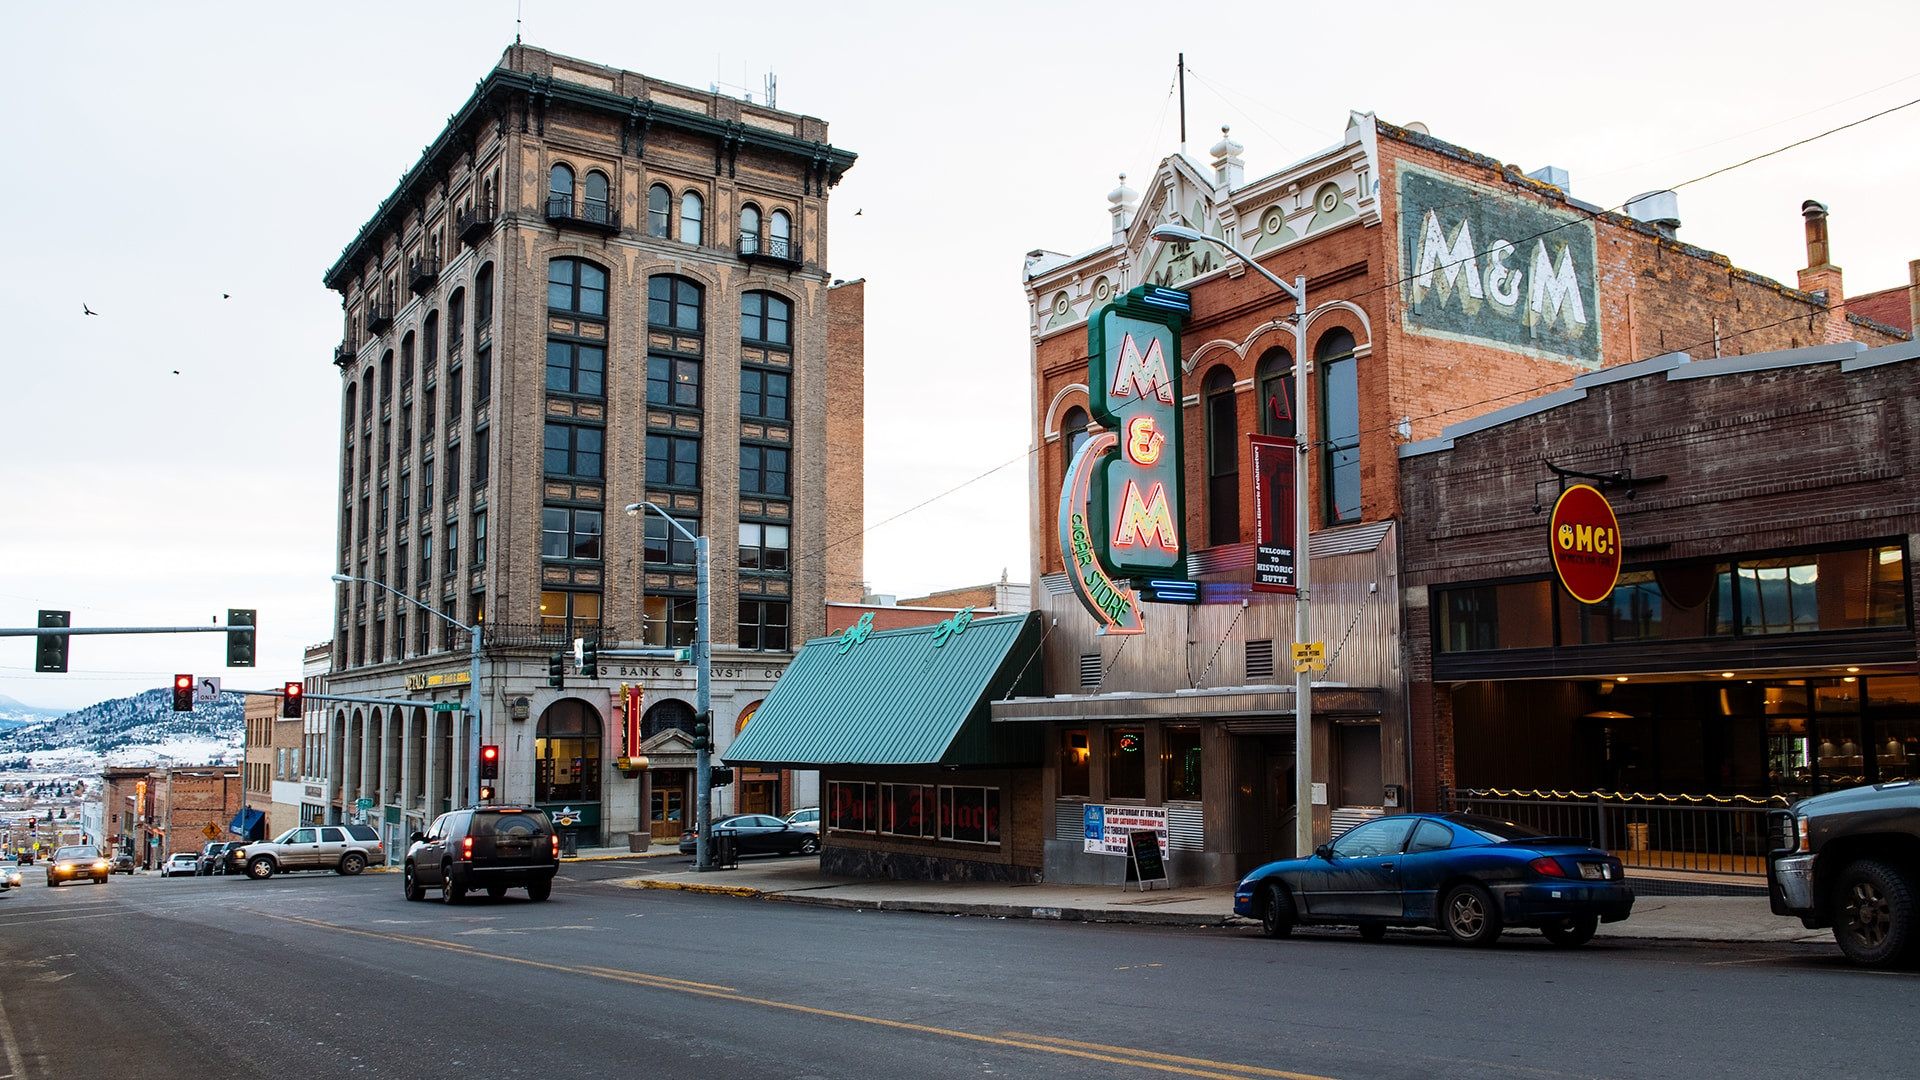 The M&M Bar and Cafe, which opened in 1890, is one of nearly 6,000 buildings that make up the Butte-Anaconda National Historic Landmark District.